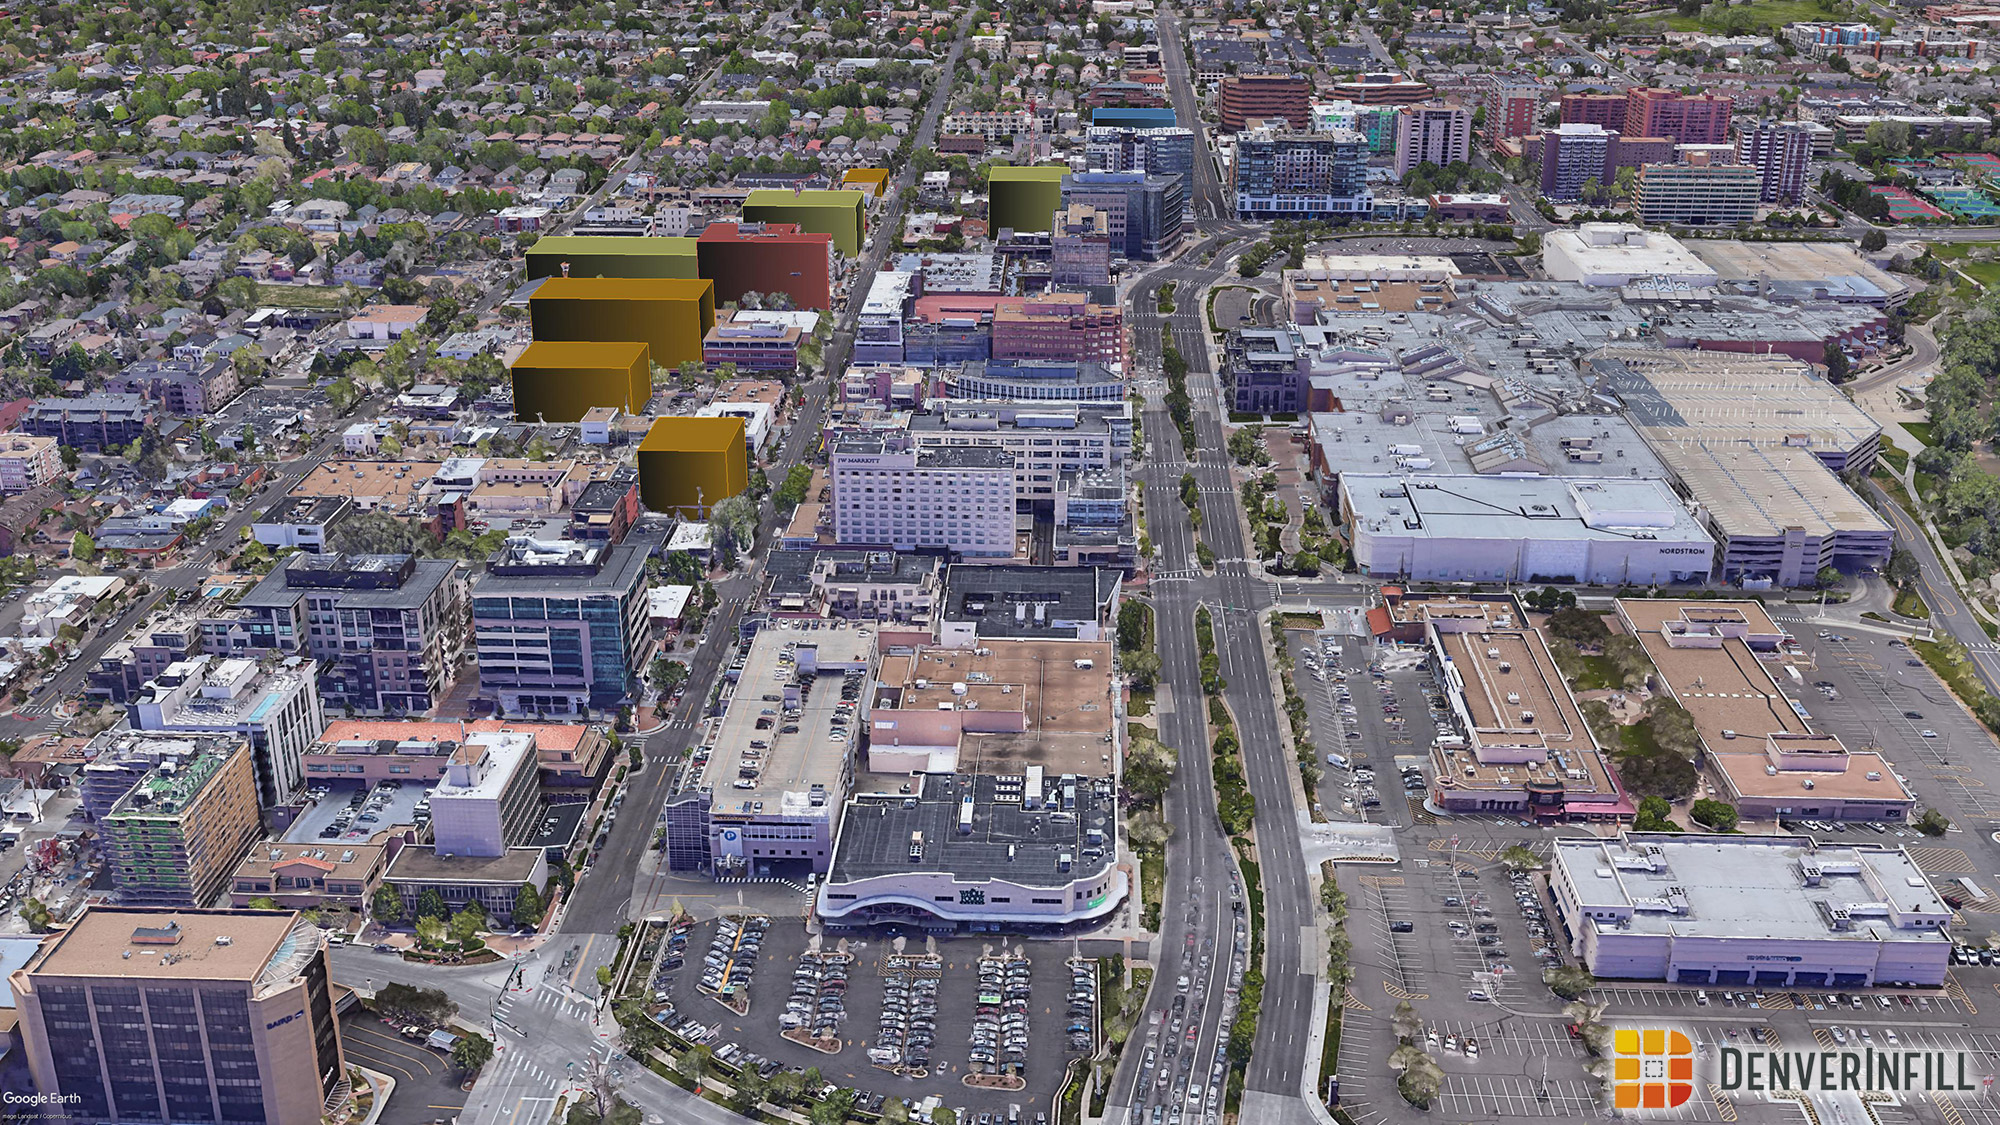 Denver 3D future skyline - view 8